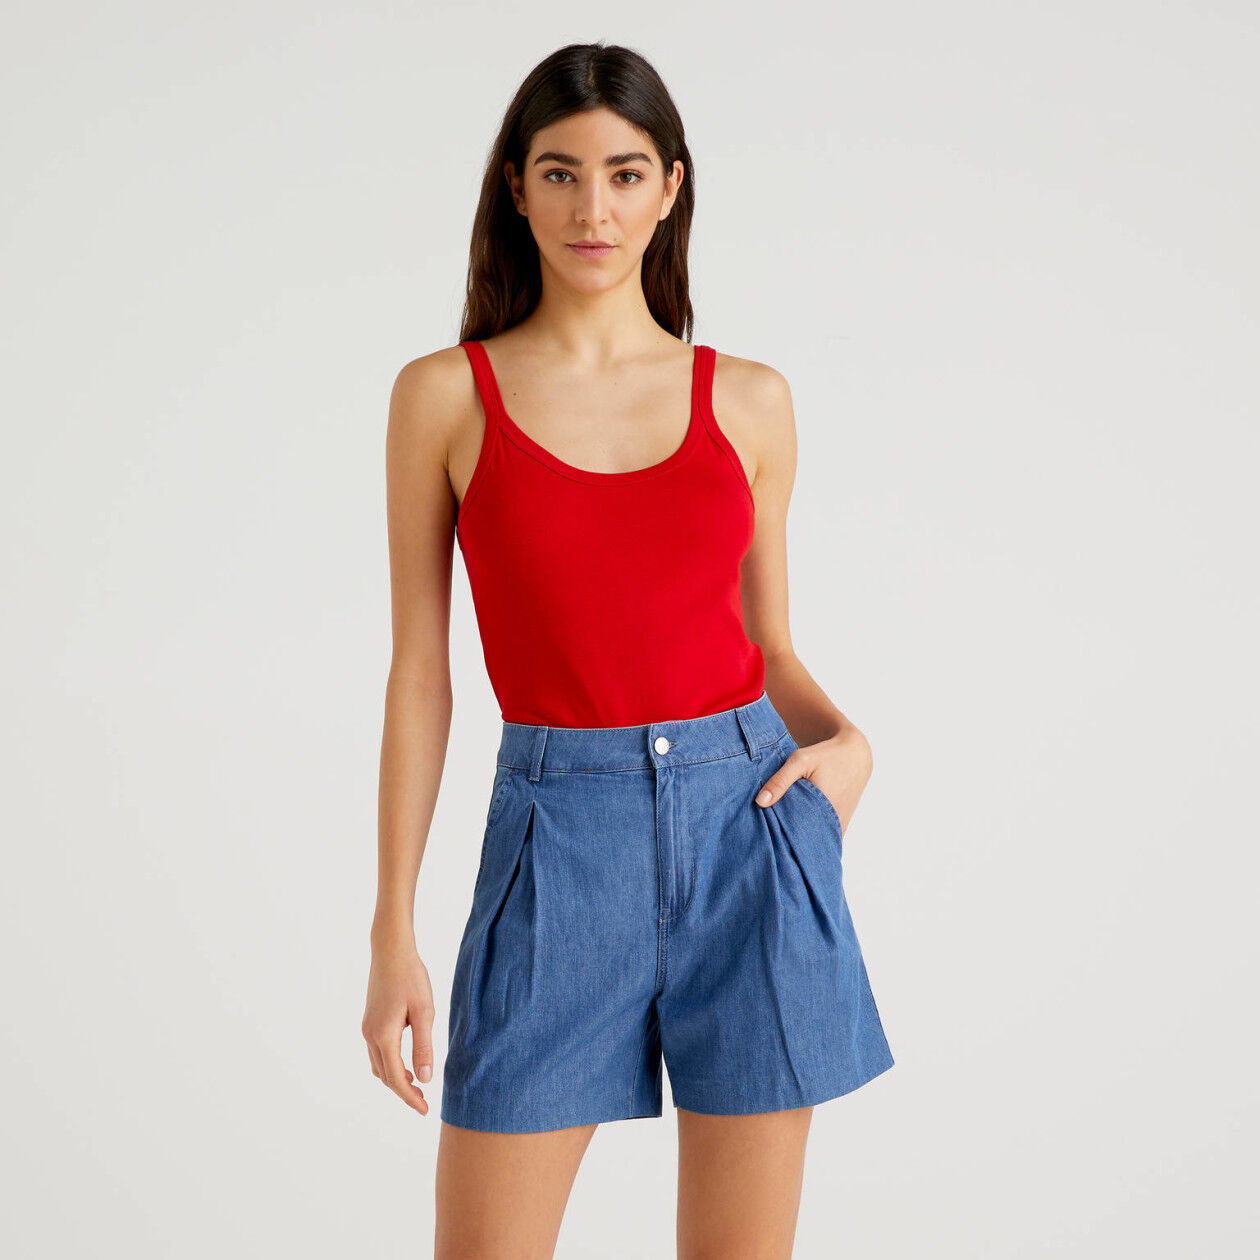 Red tank top in pure cotton